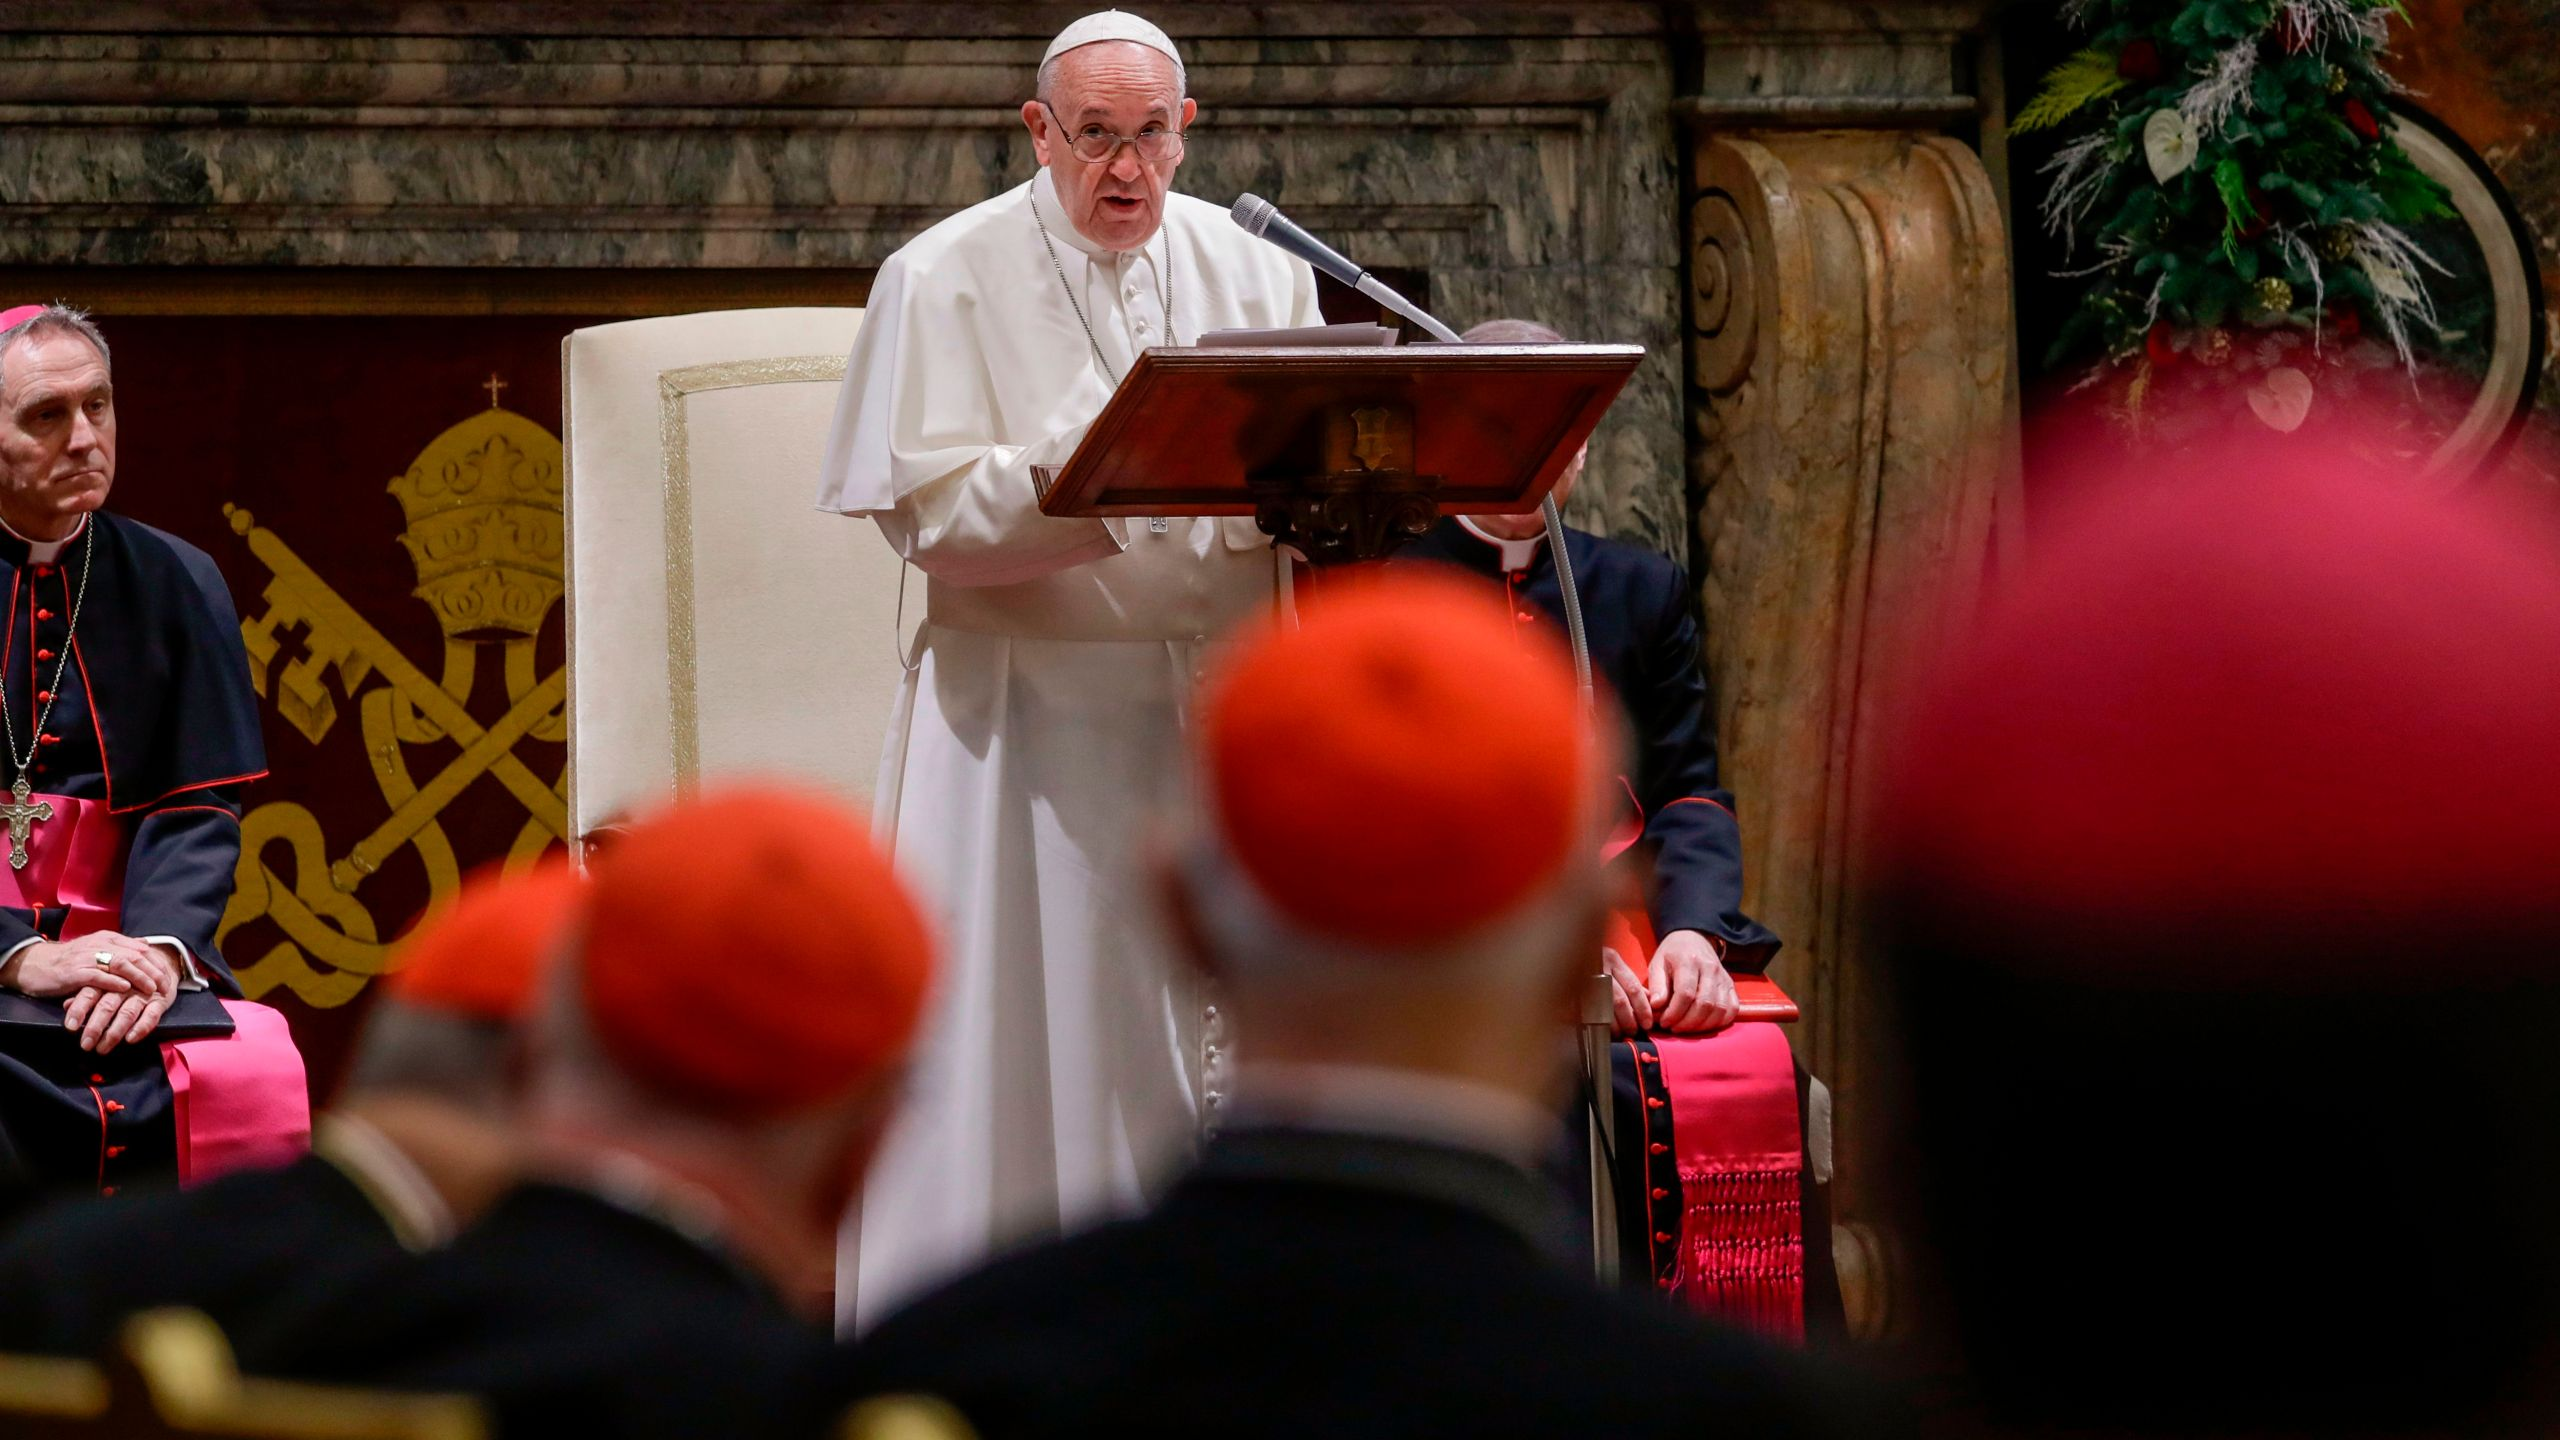 Pope Francis delivers a speech during a ceremony of Christmas greetings to the Roman Curia, in the Clementine Hall at the Vatican on Dec. 21, 2019. (Credit: ANDREW MEDICHINI/POOL/AFP via Getty Images)